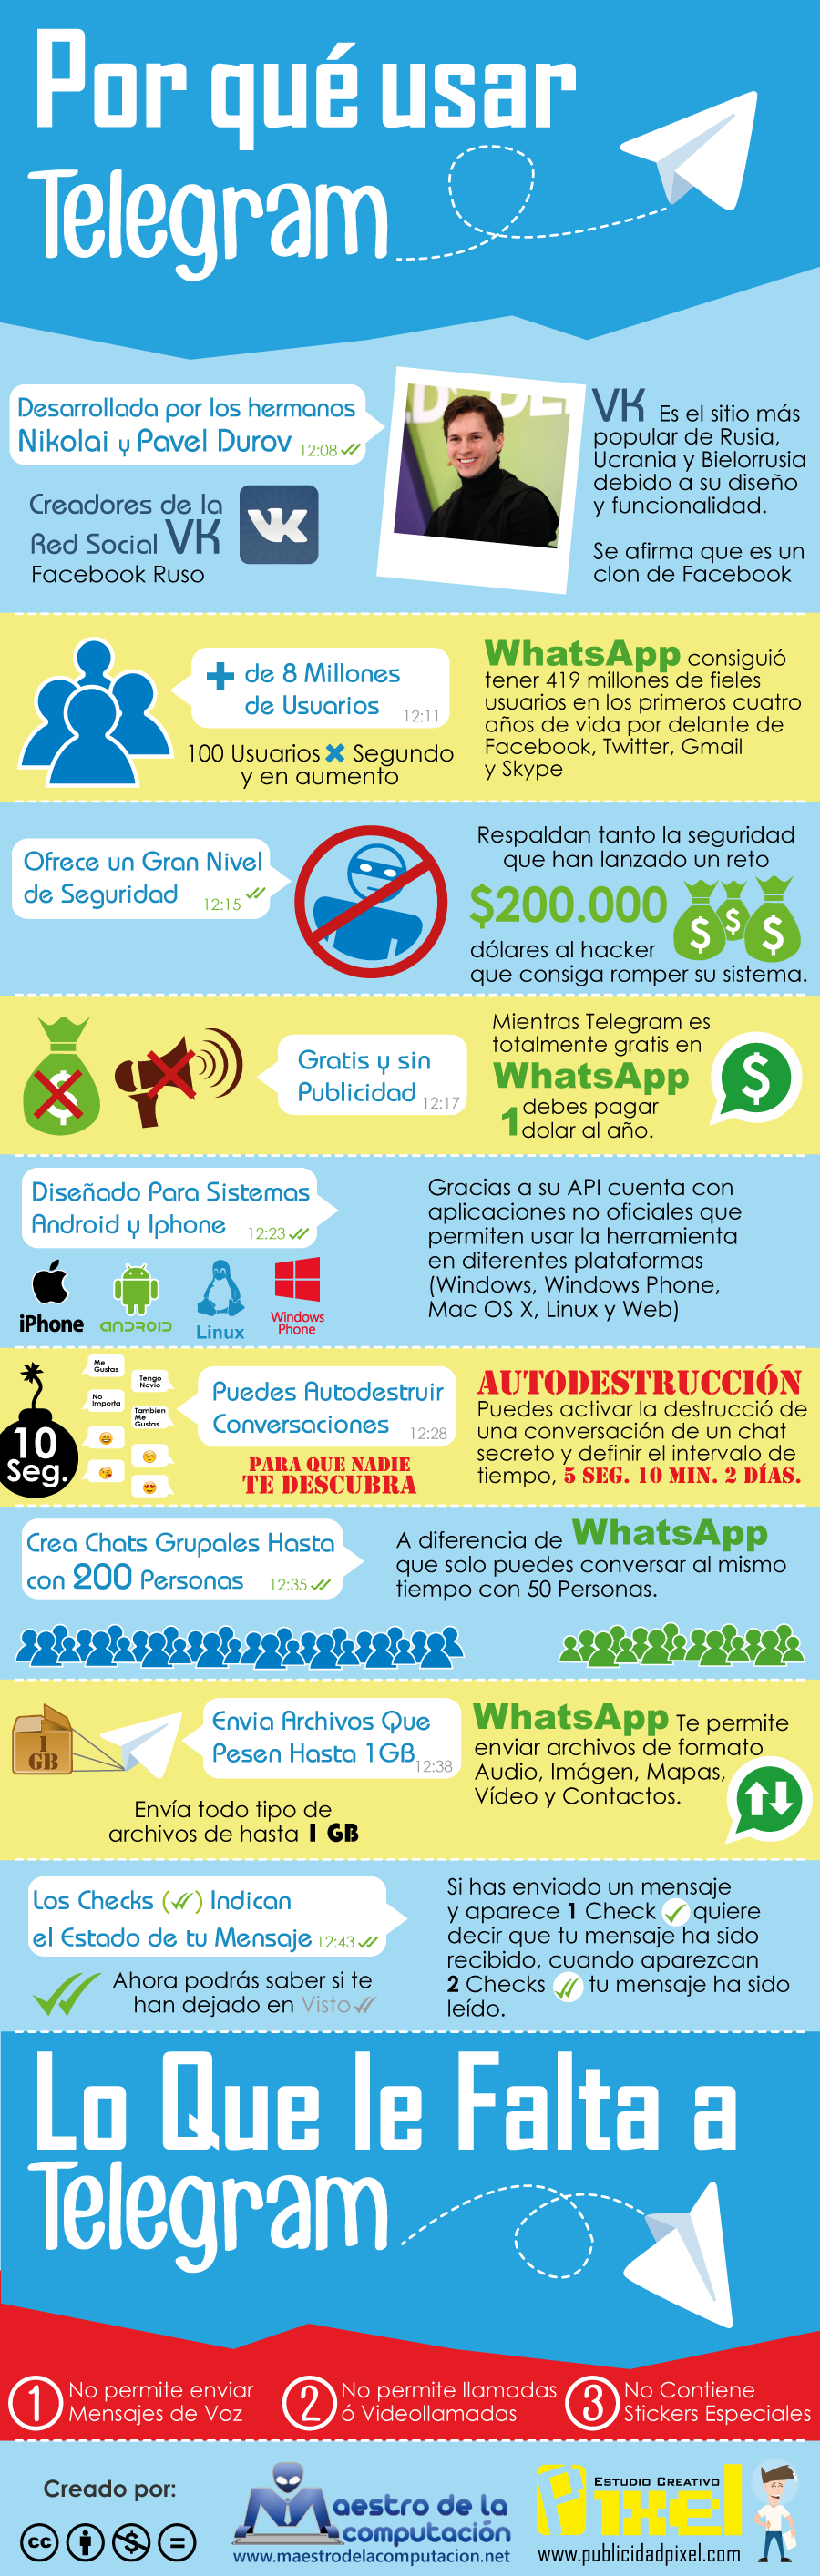 infografia-telegram-900